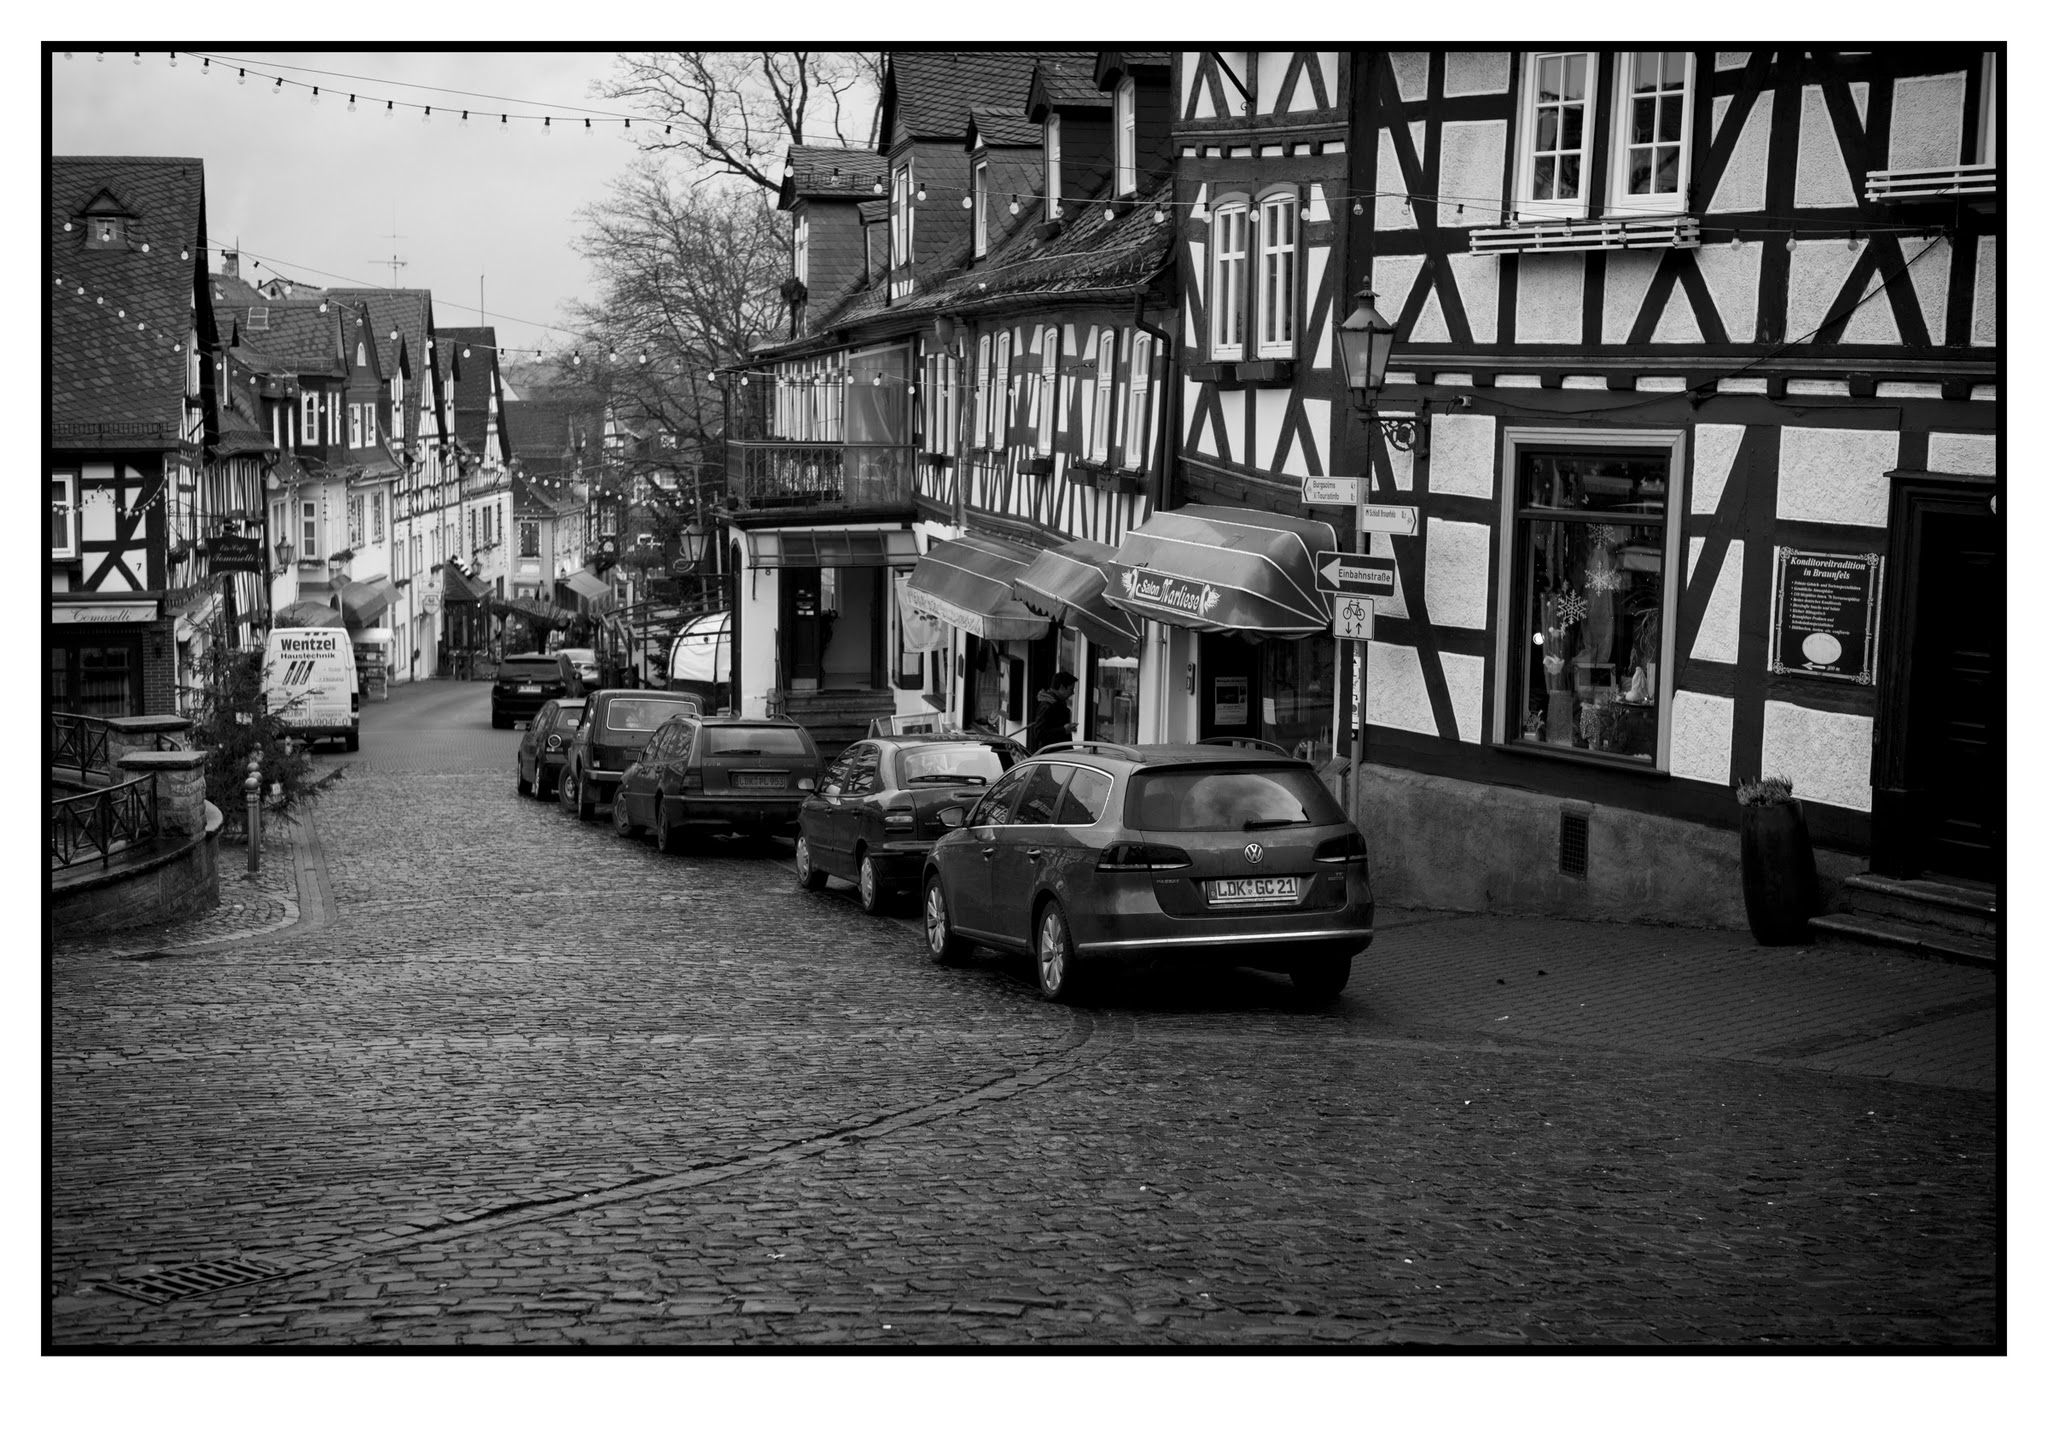 A street photographer's nightmare | Braunfels, Germany, 2011